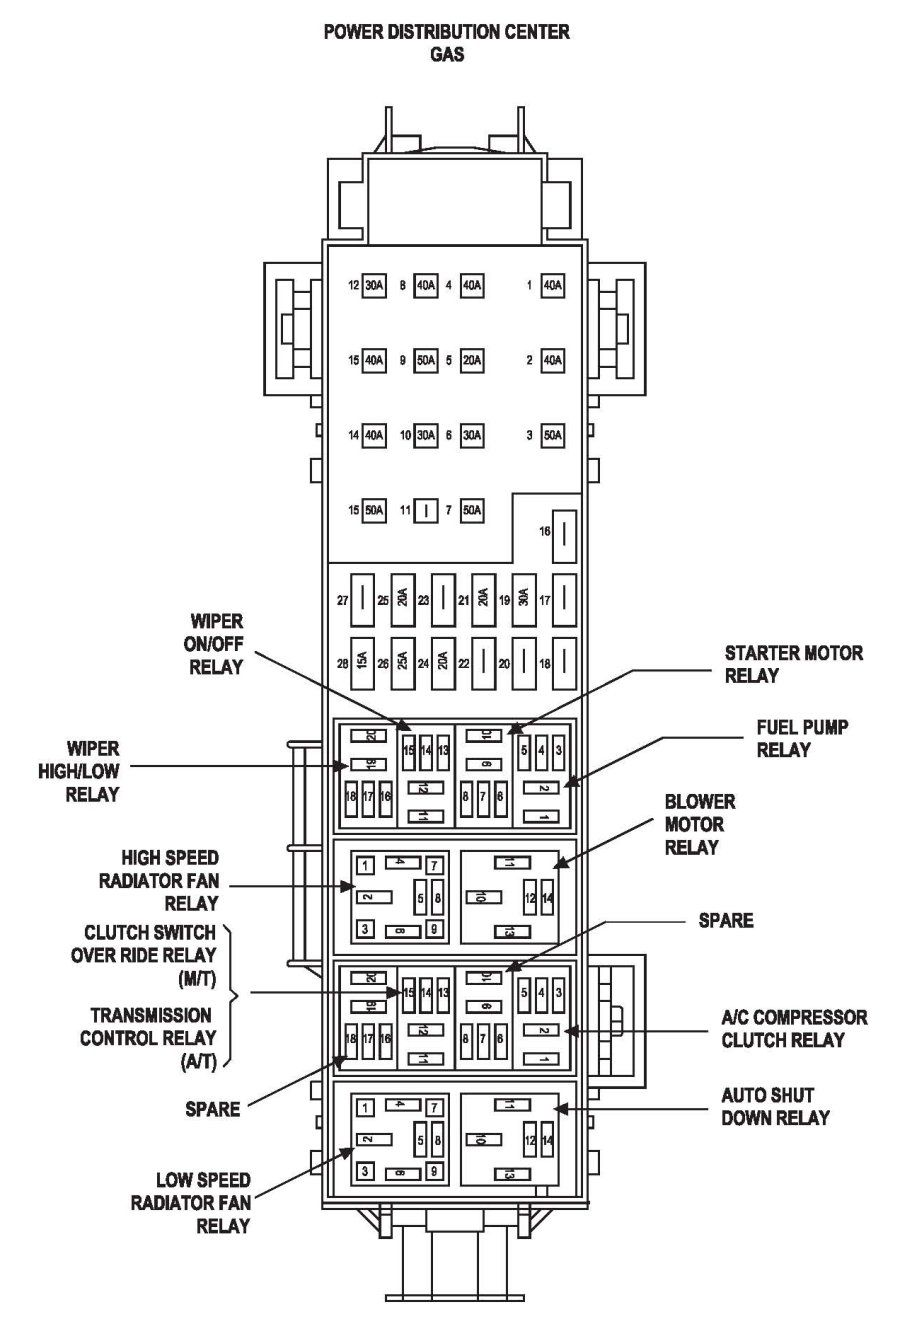 jeep liberty fuse box diagram image details jeep liberty rh pinterest com  1999 ford f150 fuse box diagrams fuse box diagrams and relays - 2000 chevy  venture